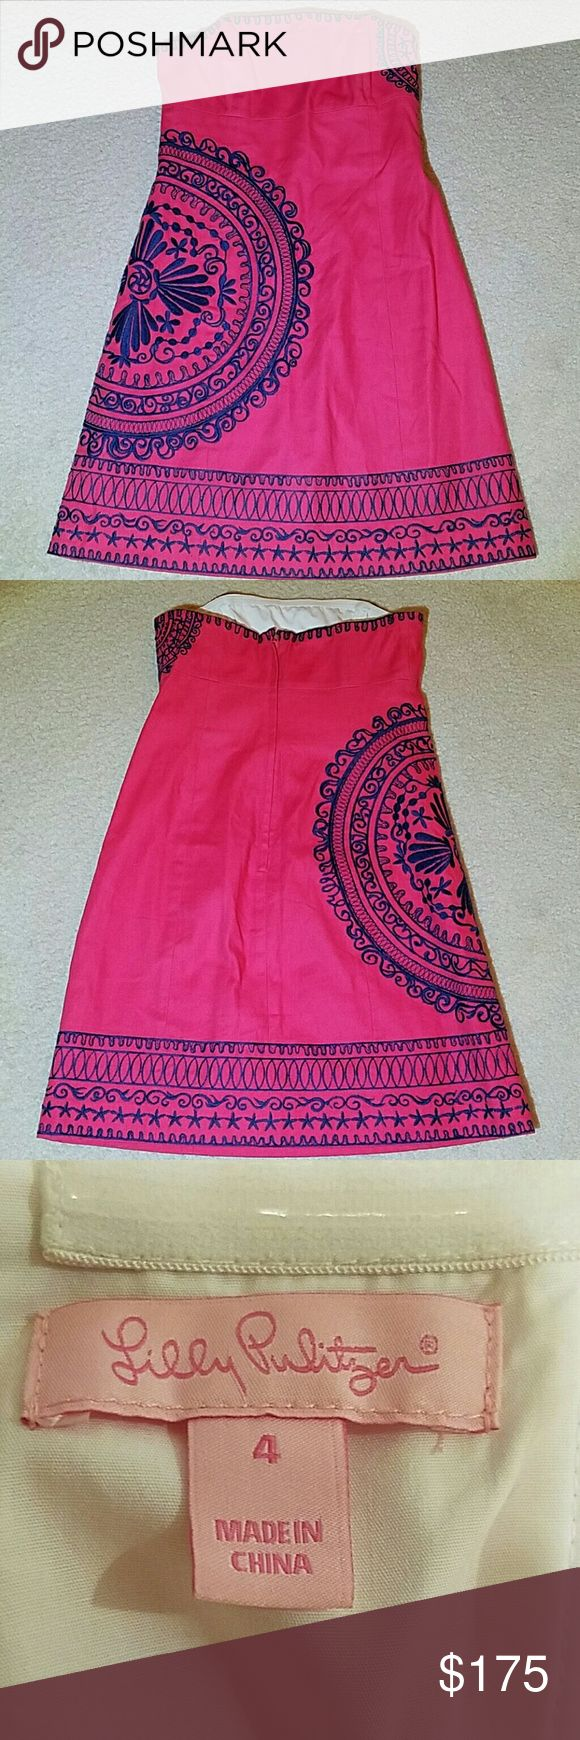 Lilly Pulitzer  Strapless Dress ( Sale!) Stunning colors! Perfect condition. Never worn. Length is 28.5 Lilly Pulitzer Dresses Midi